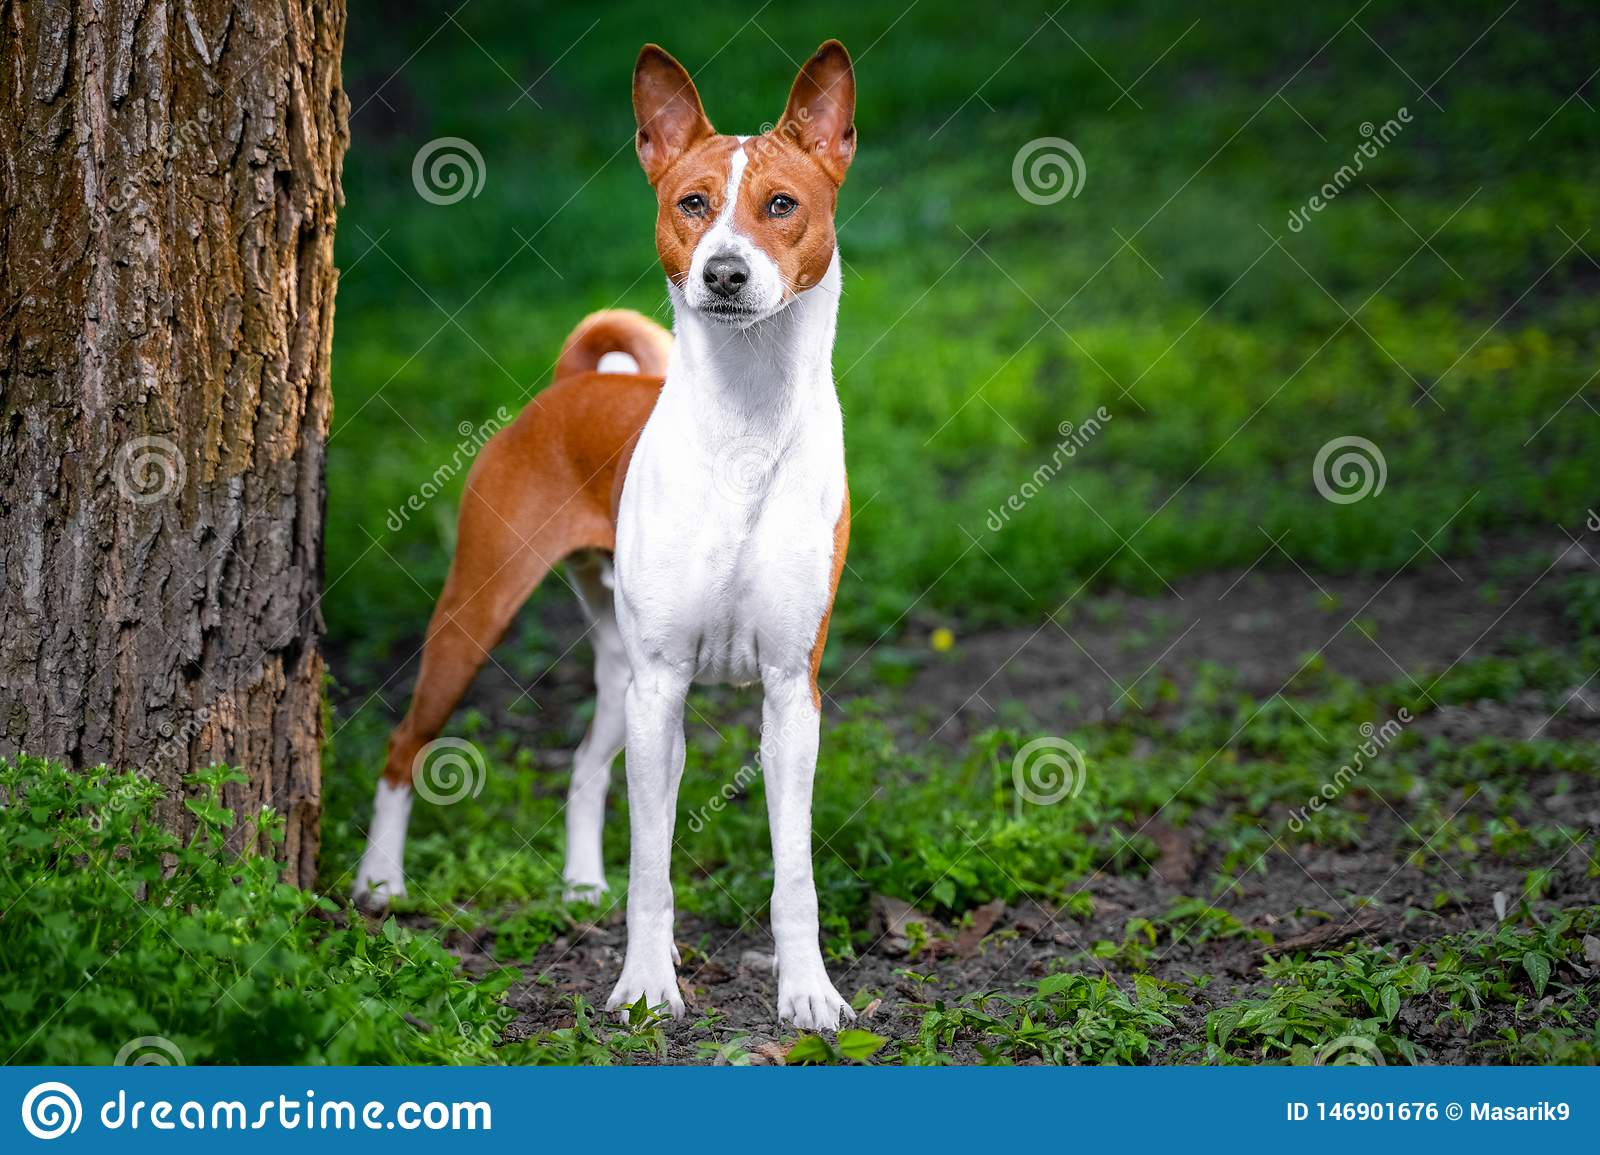 Portrait of a red basenji standing between the trees in a summer forest on the Sunset. Basenji Kongo Terrier Dog